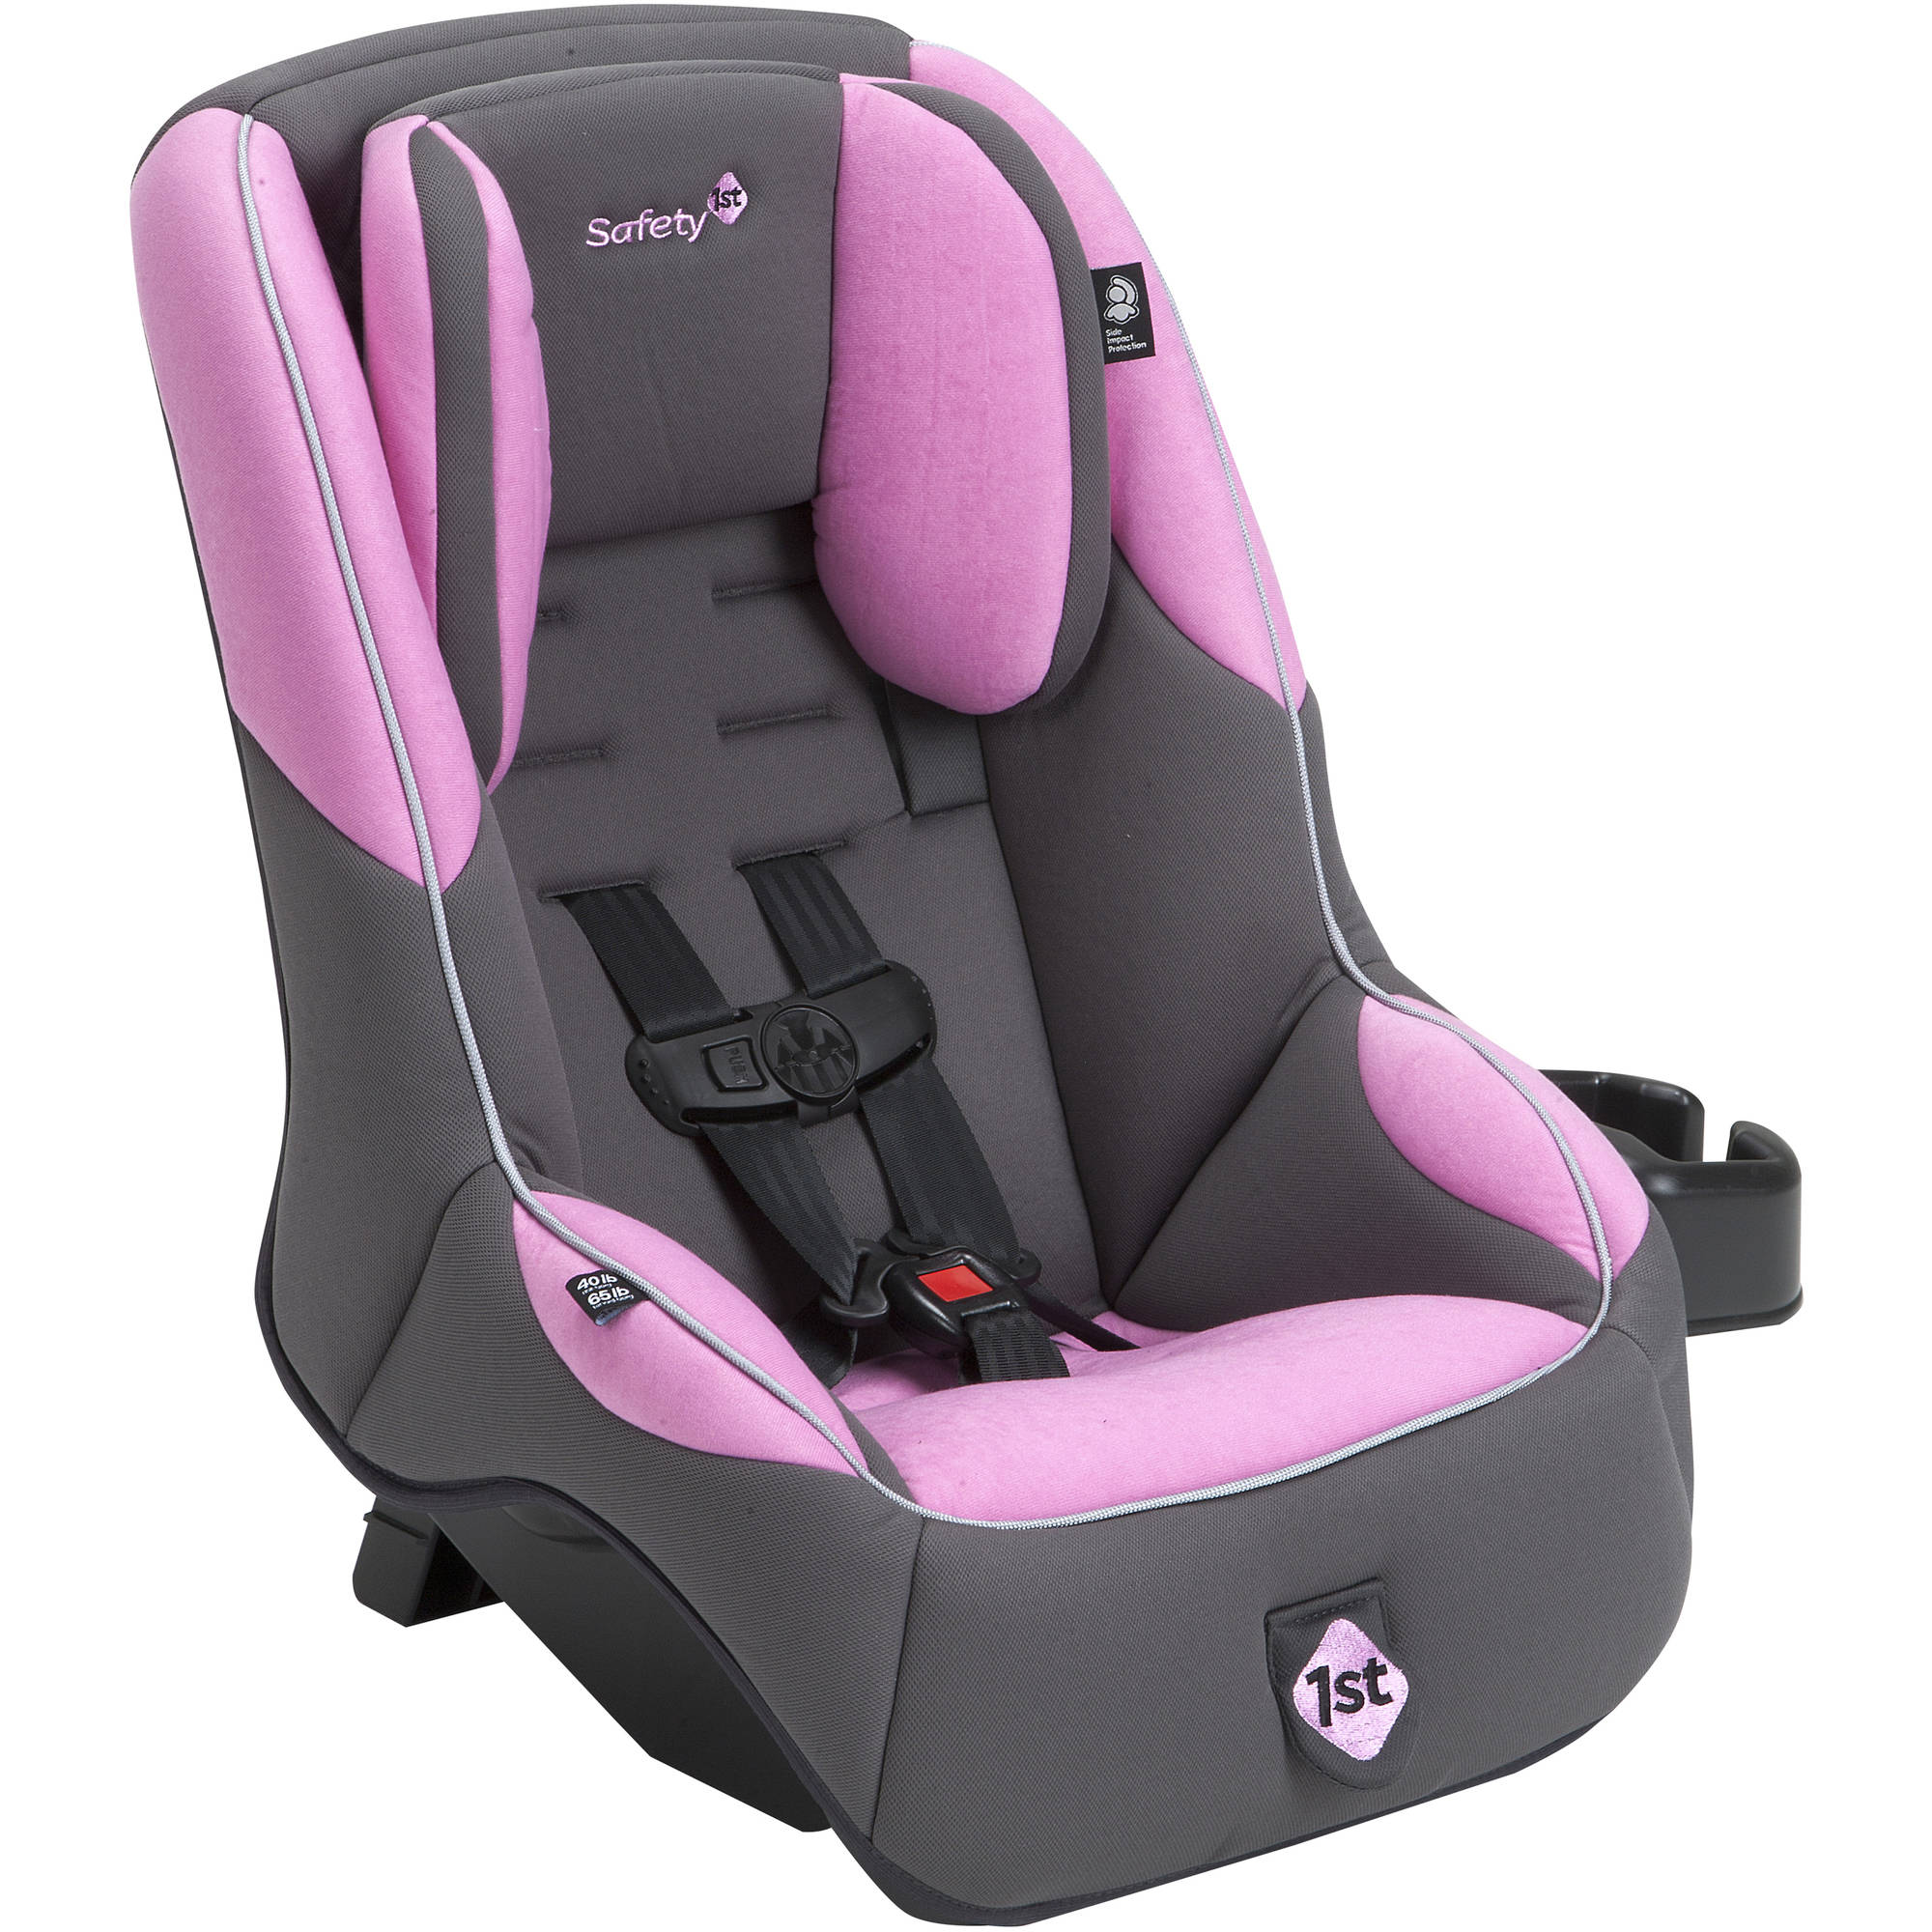 Safety 1st Guide 65 Sport Convertible Car Seat, Choose Your Color |